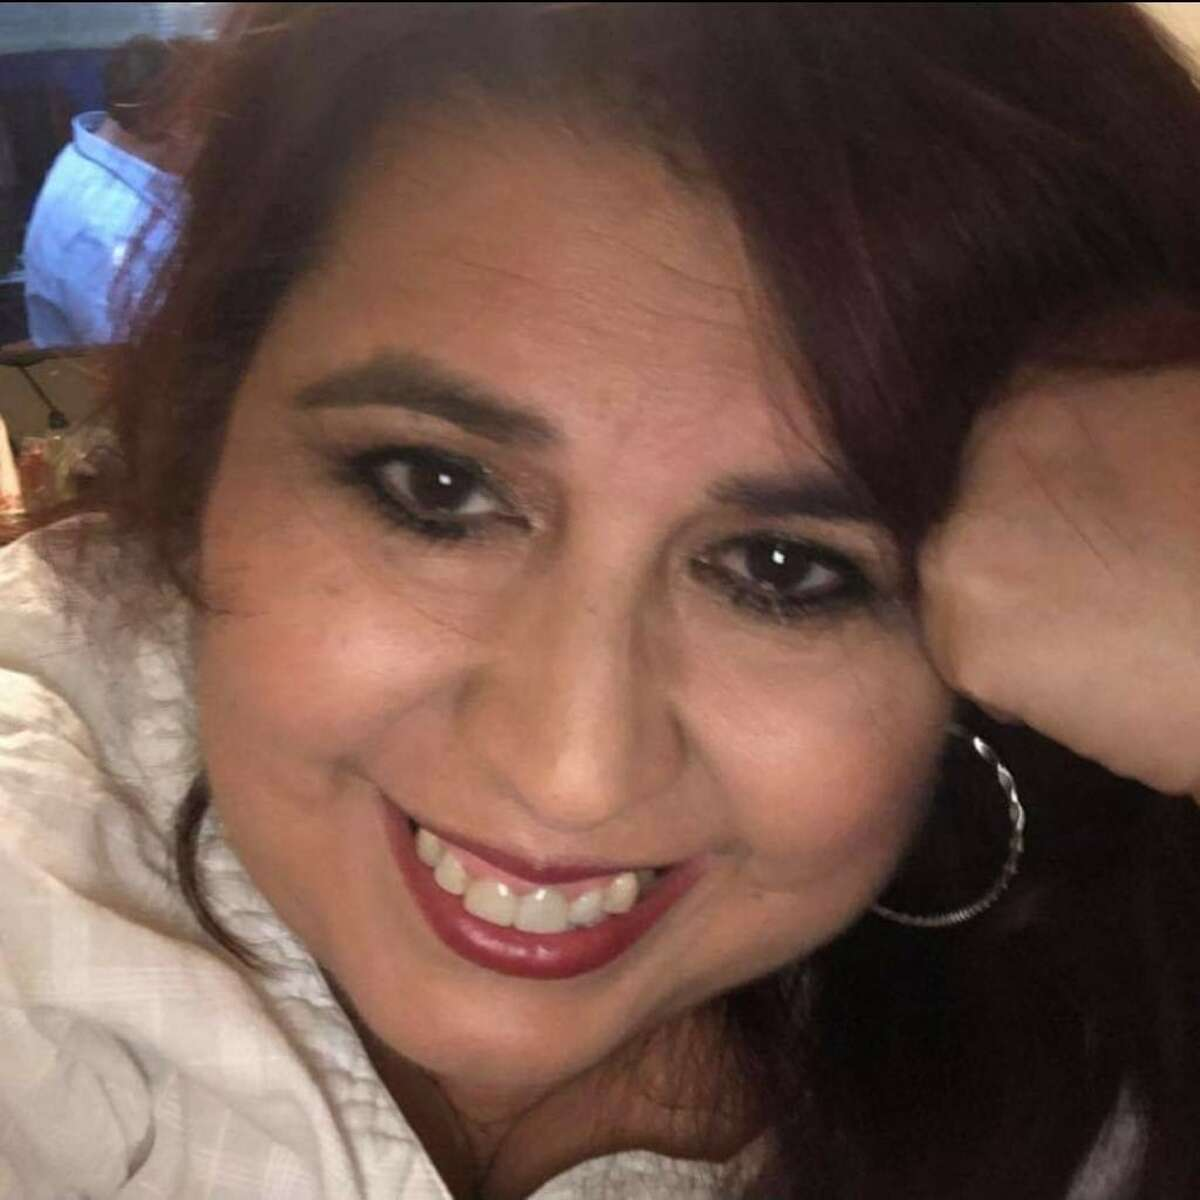 Melissa Martinez, who taught at Rogers Academy in the San Antonio Independent School District, died Wednesday morning of COVID-19.